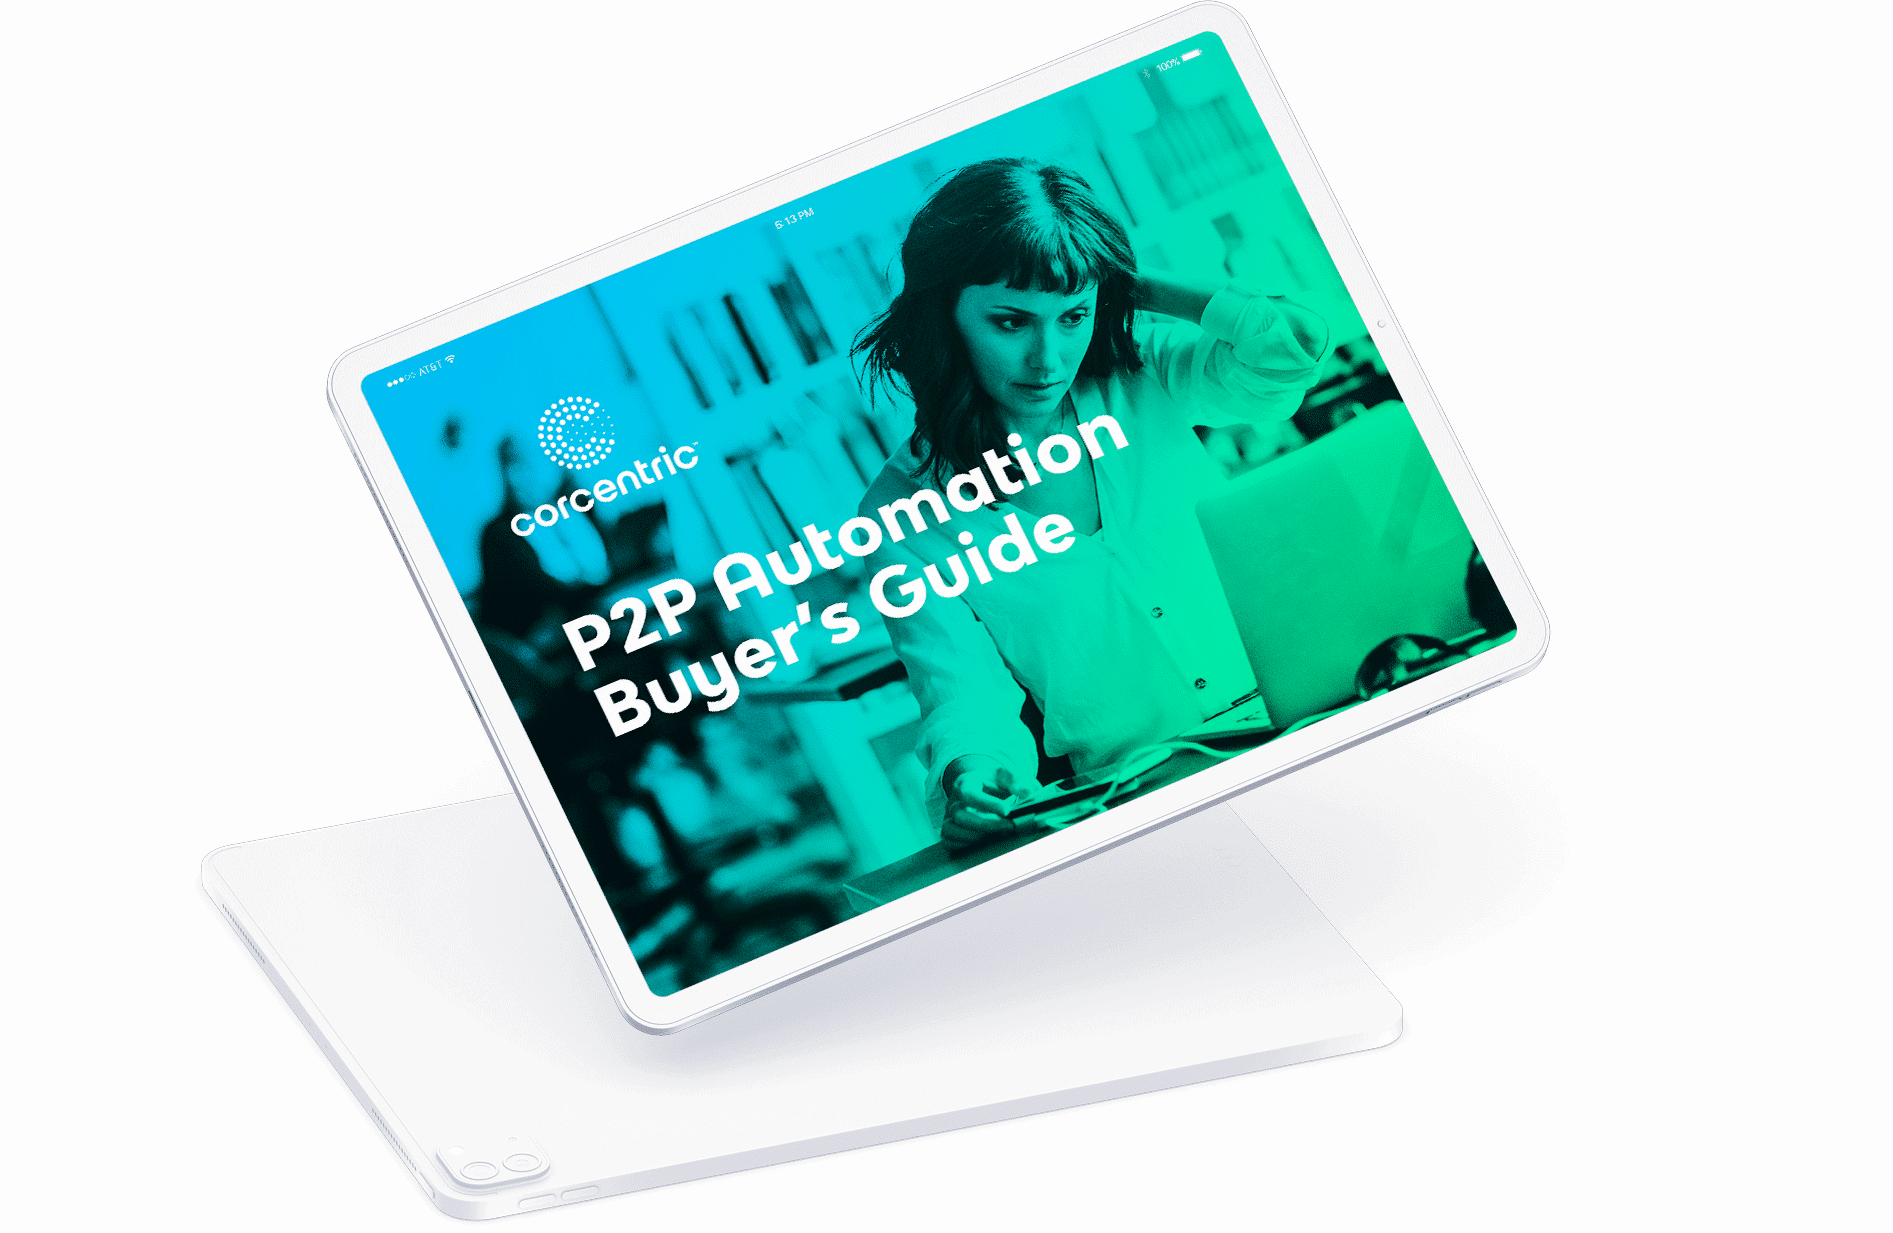 webinar-the-p2p-automation-buyers-guide-asset